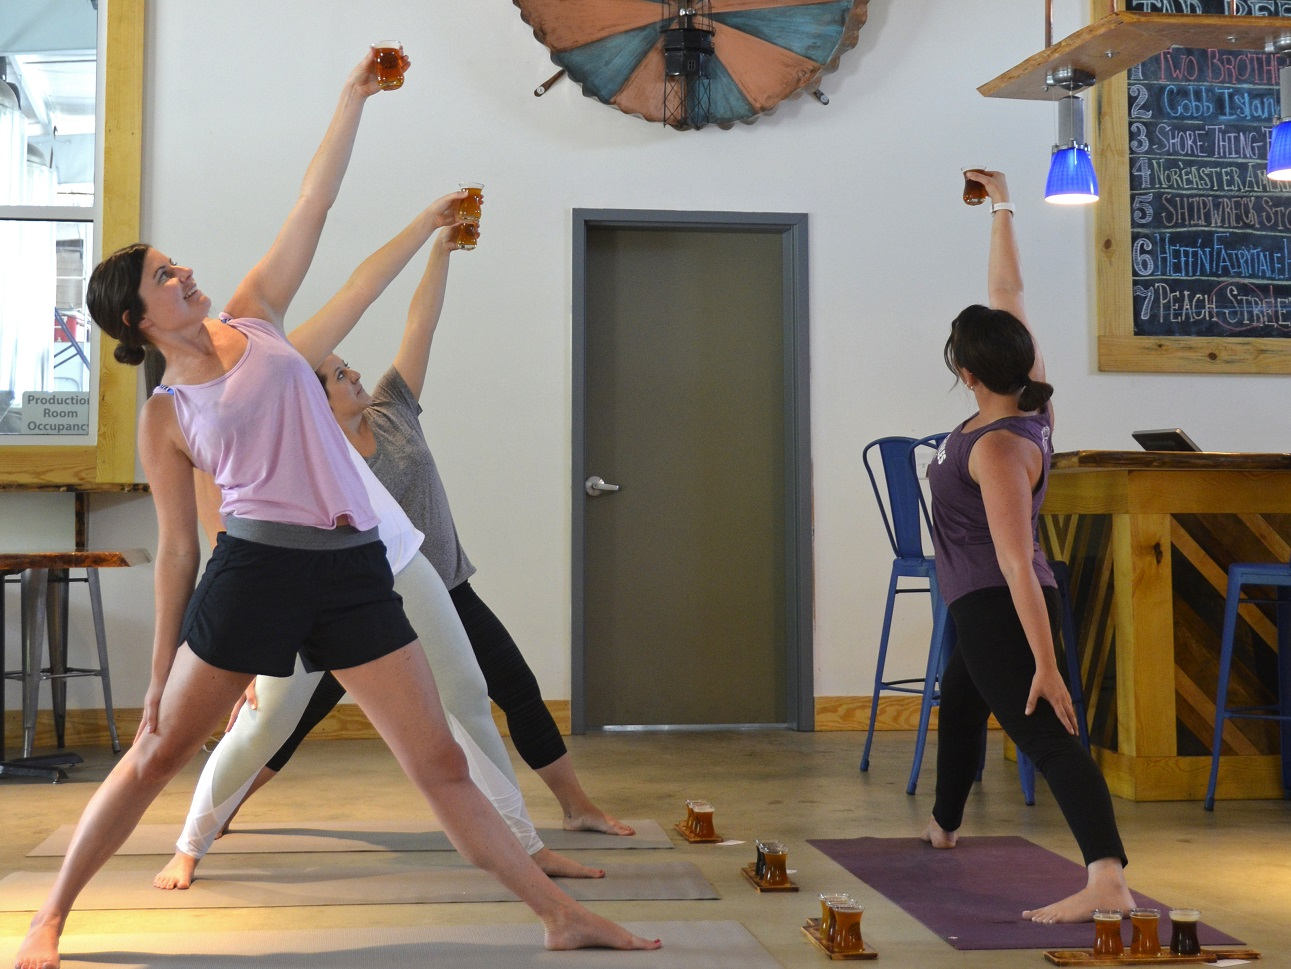 breathe easy and smile yoga class at cape charles brewing company